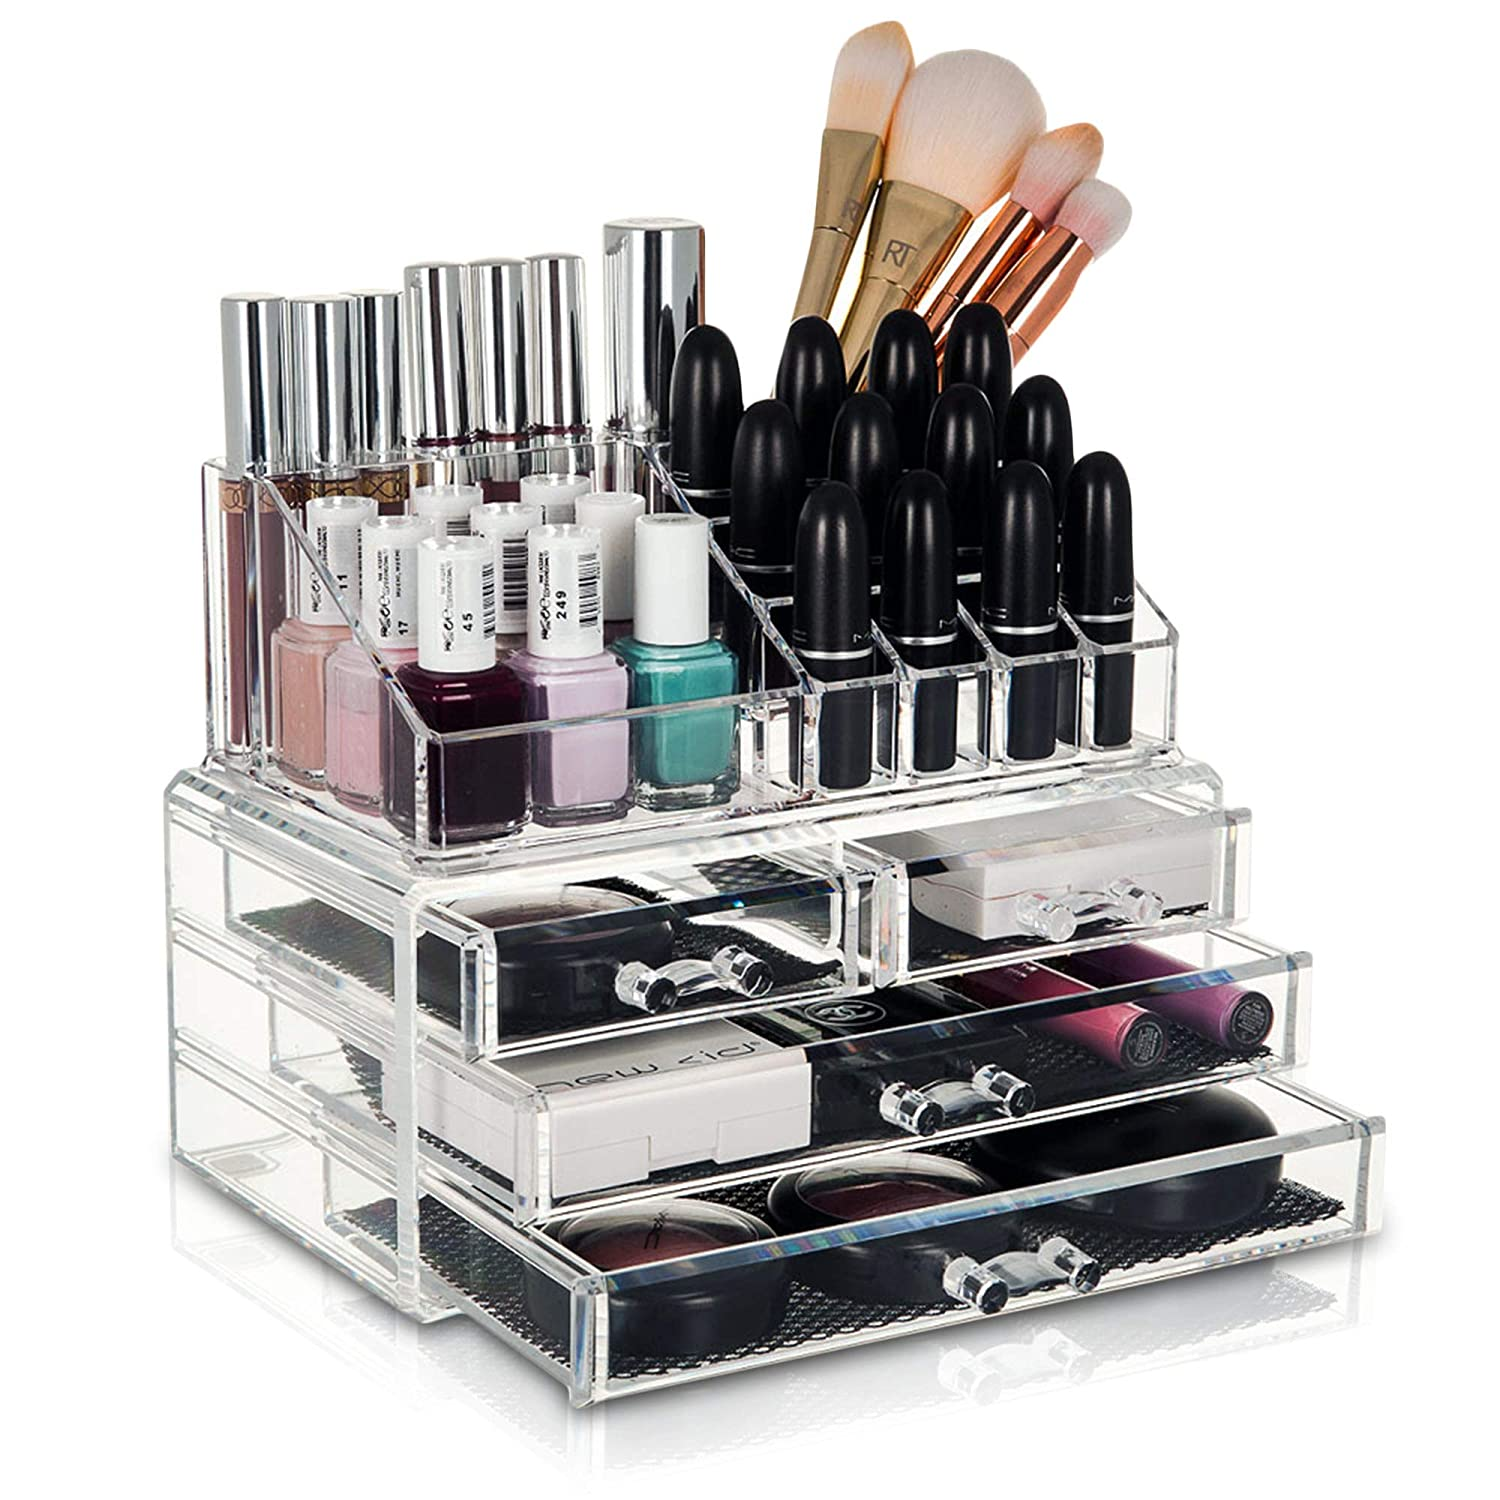 GLAMSMACKED Black Acrylic Cosmetic Organiser Display Table Storage Stand for Make Up, 4 Drawer Nail Polish, Varnish, Arts and Crafts, Brush Sets, and Jewellery